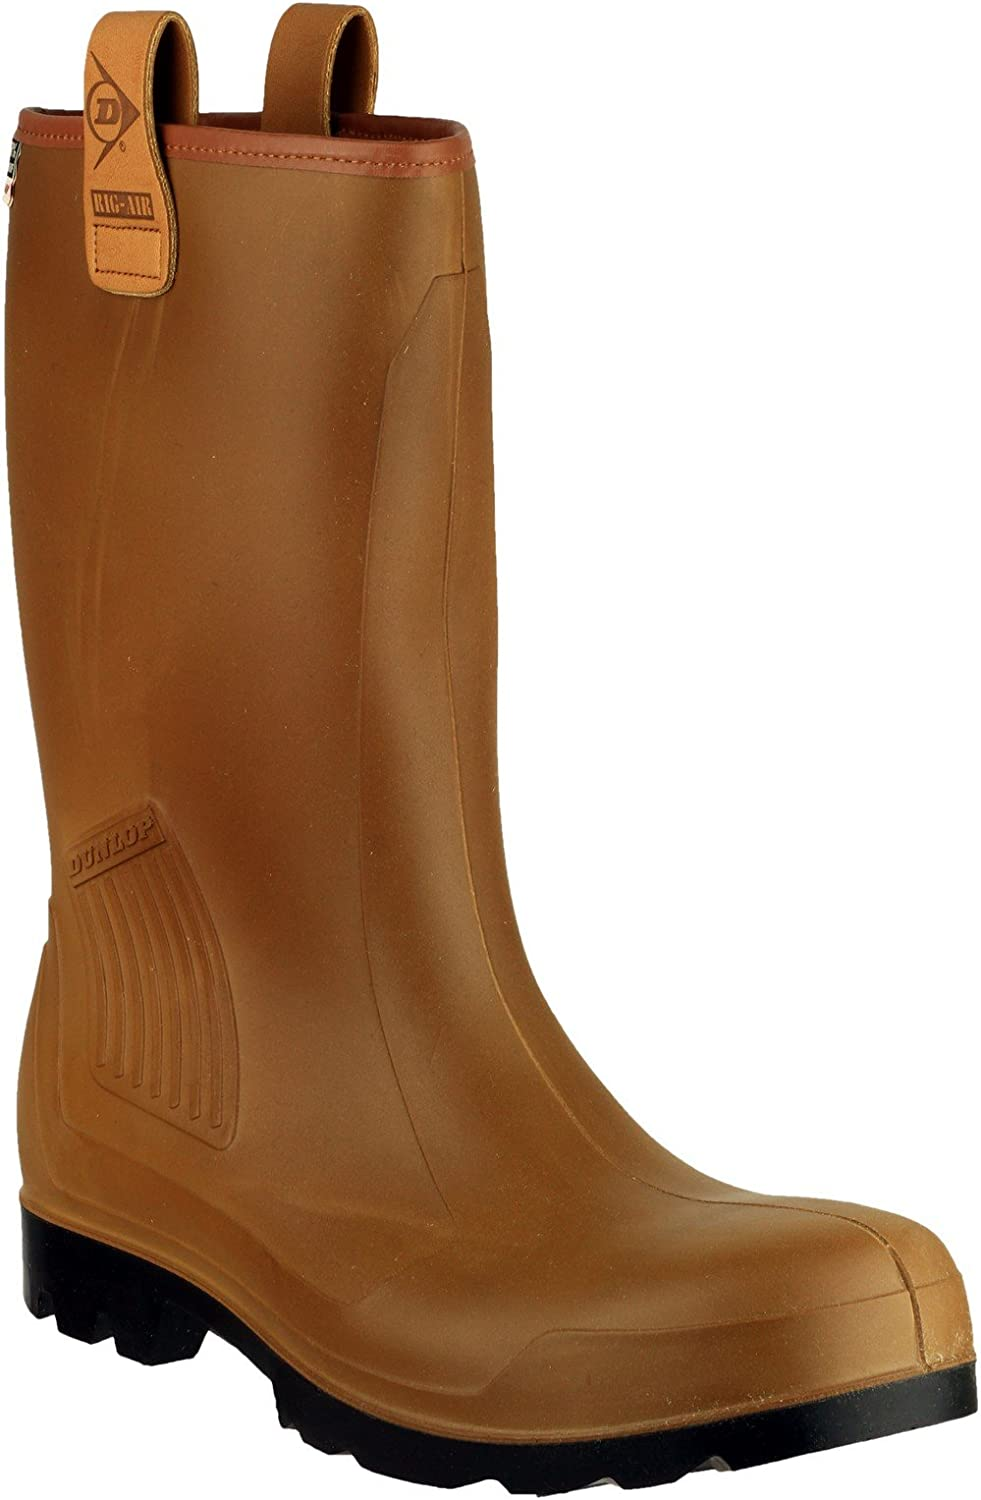 Dunlop R-AIR Lined C462 Safety Wellingtons